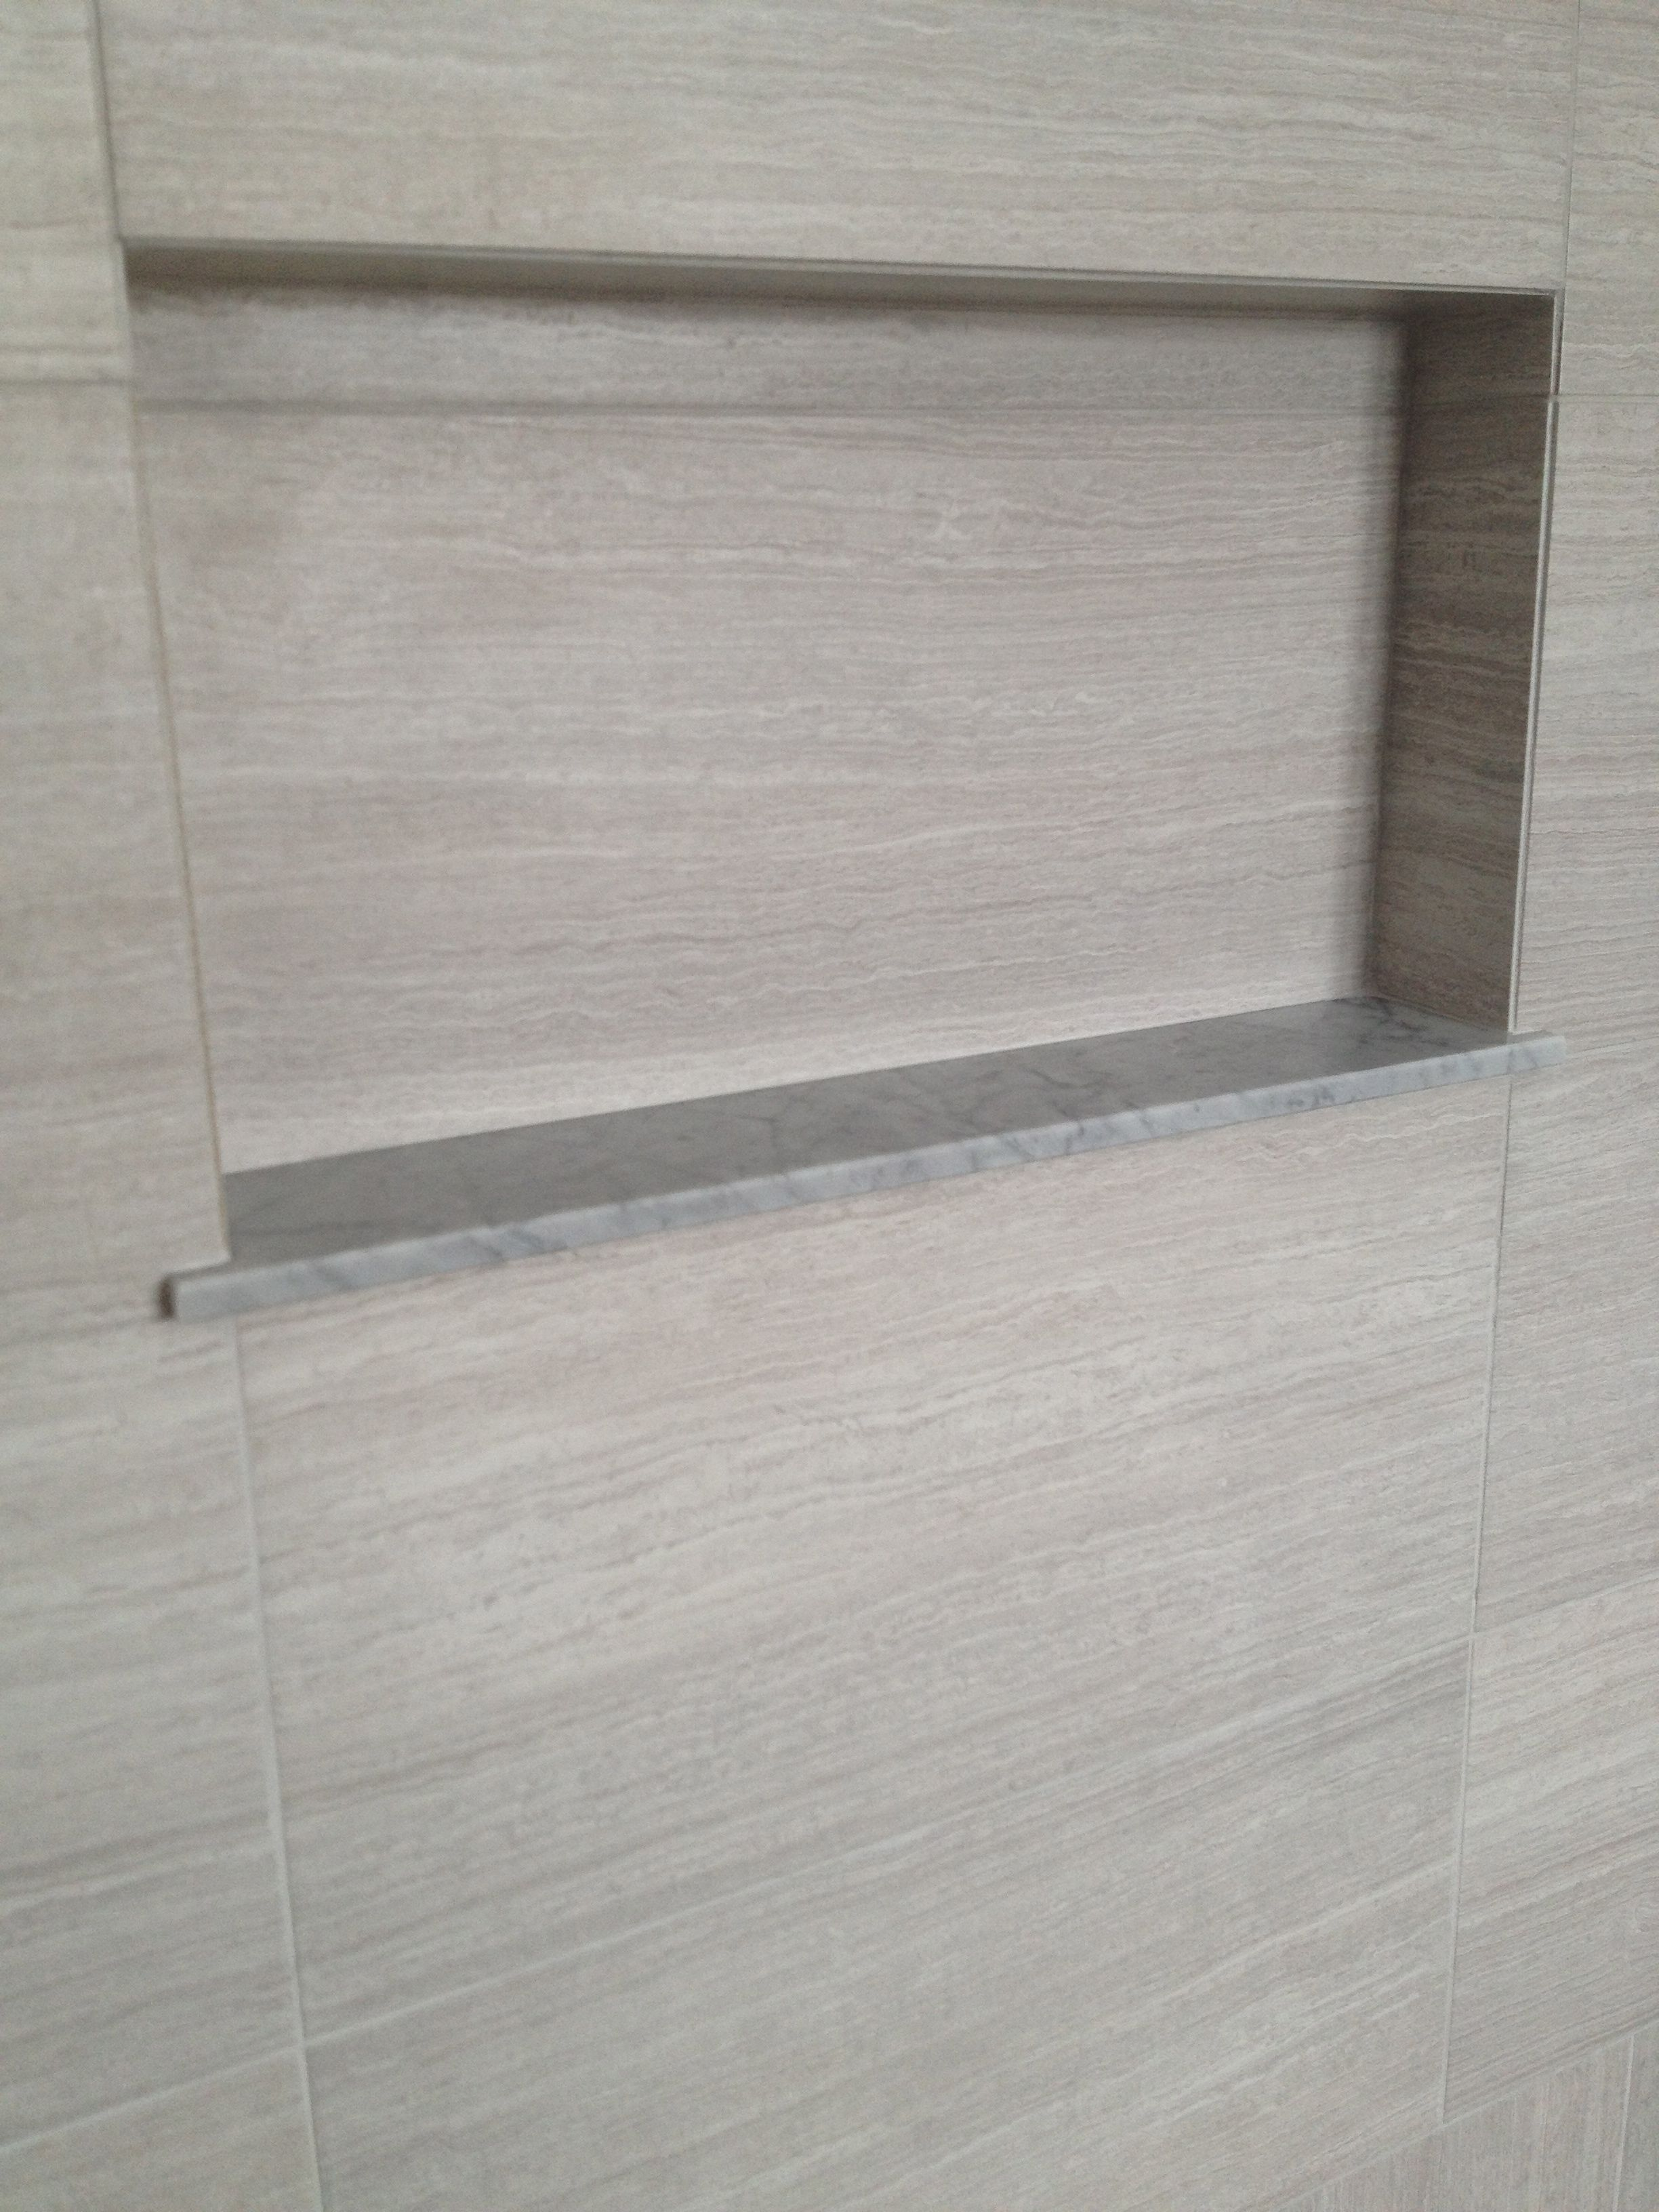 A Shower Niche With A Marble Sill Ideas For The House